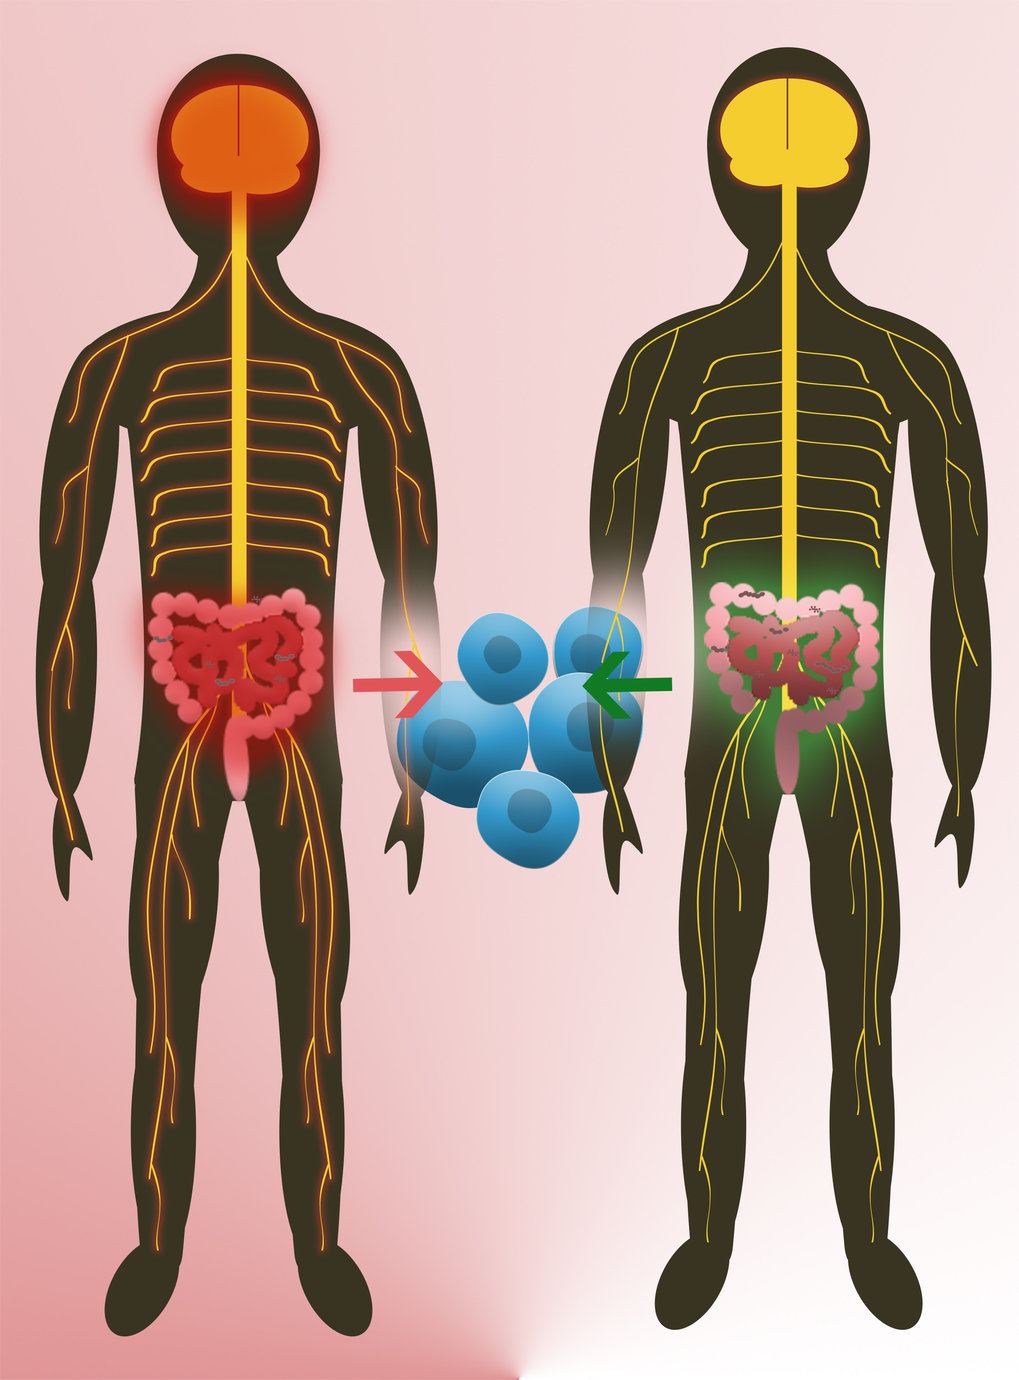 Intestinal flora from twins is able to initiate multiple sclerosis